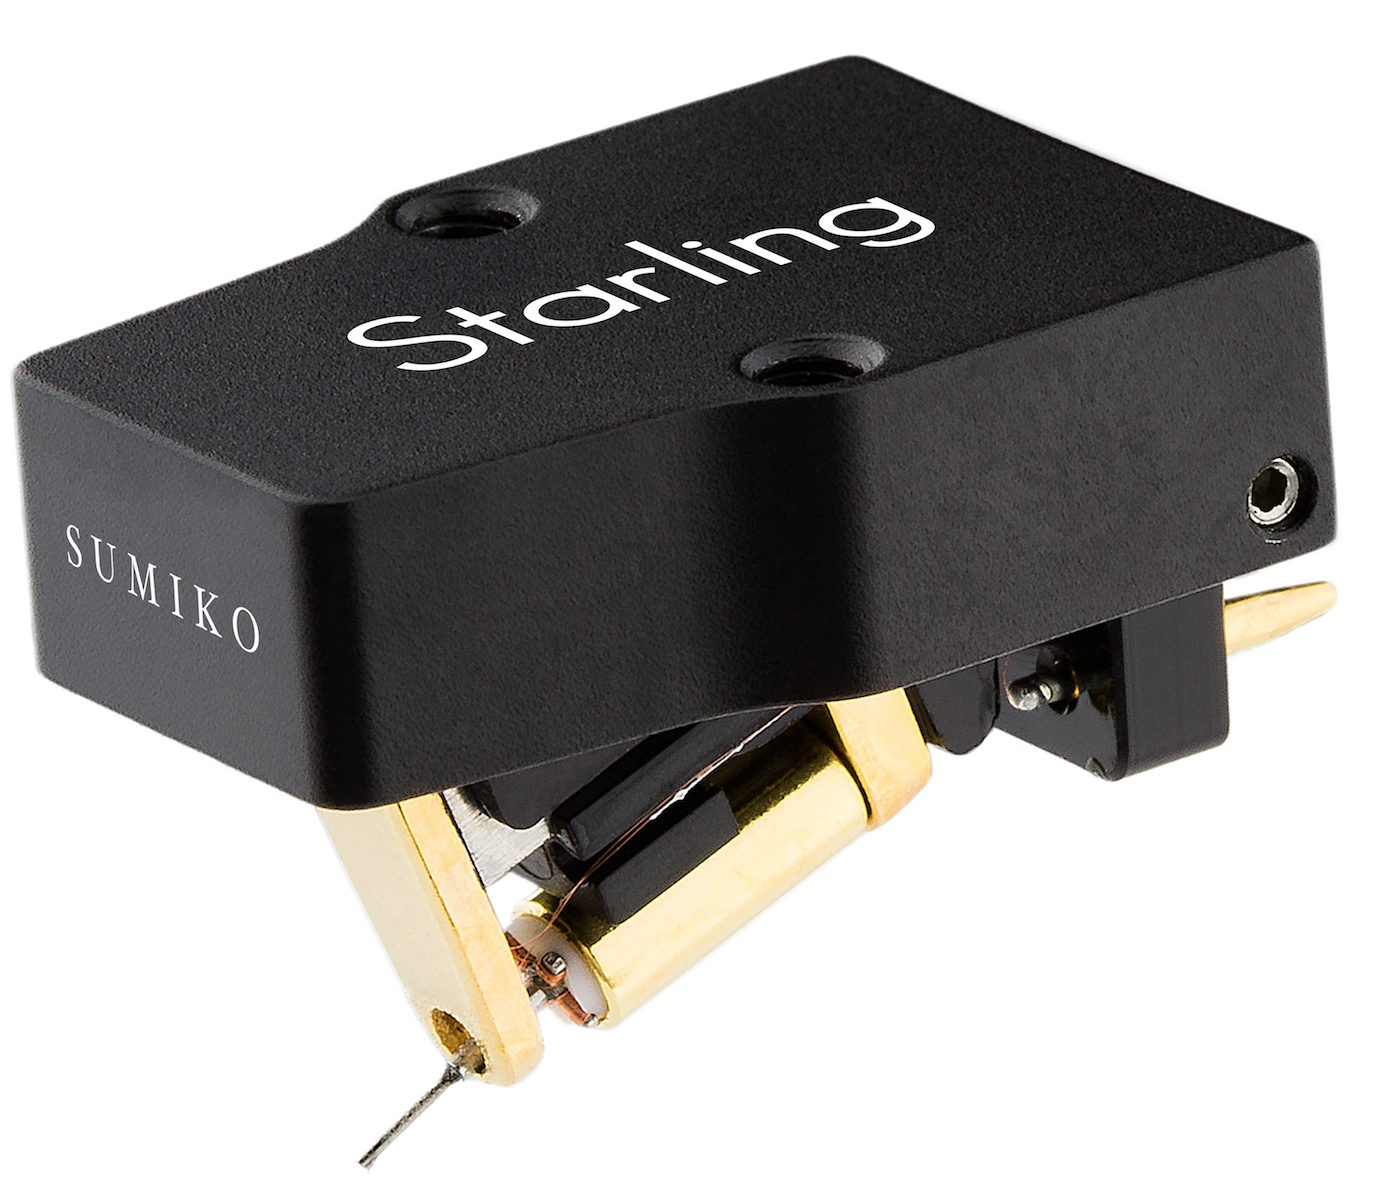 Sumiko Announces 6 New Phono Cartridges